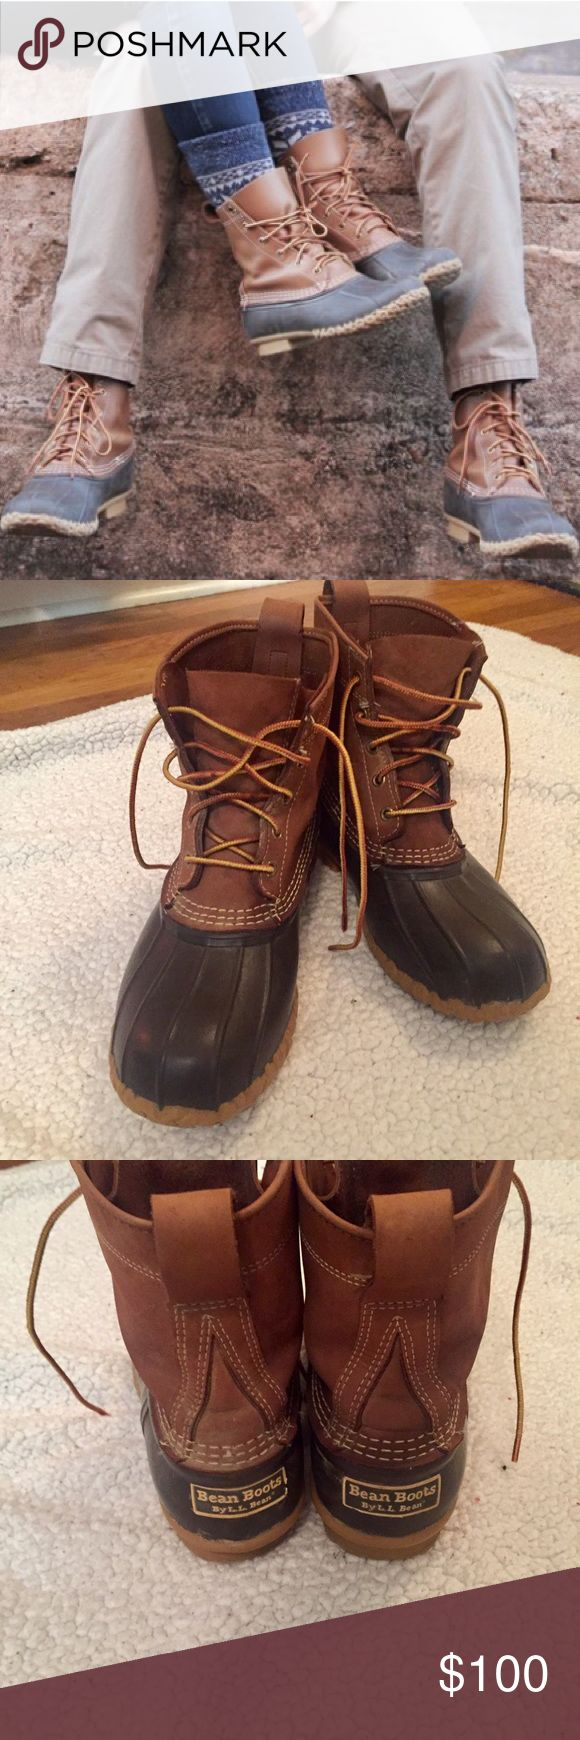 Bean boots/Duck boots • L.L. Bean The traditional L.L. Bean duck boots. These boots have been loved but now are worn in for comfort. Women's 9.5. Price negotiable. No trades L.L. Bean Shoes Rain & Snow Boots